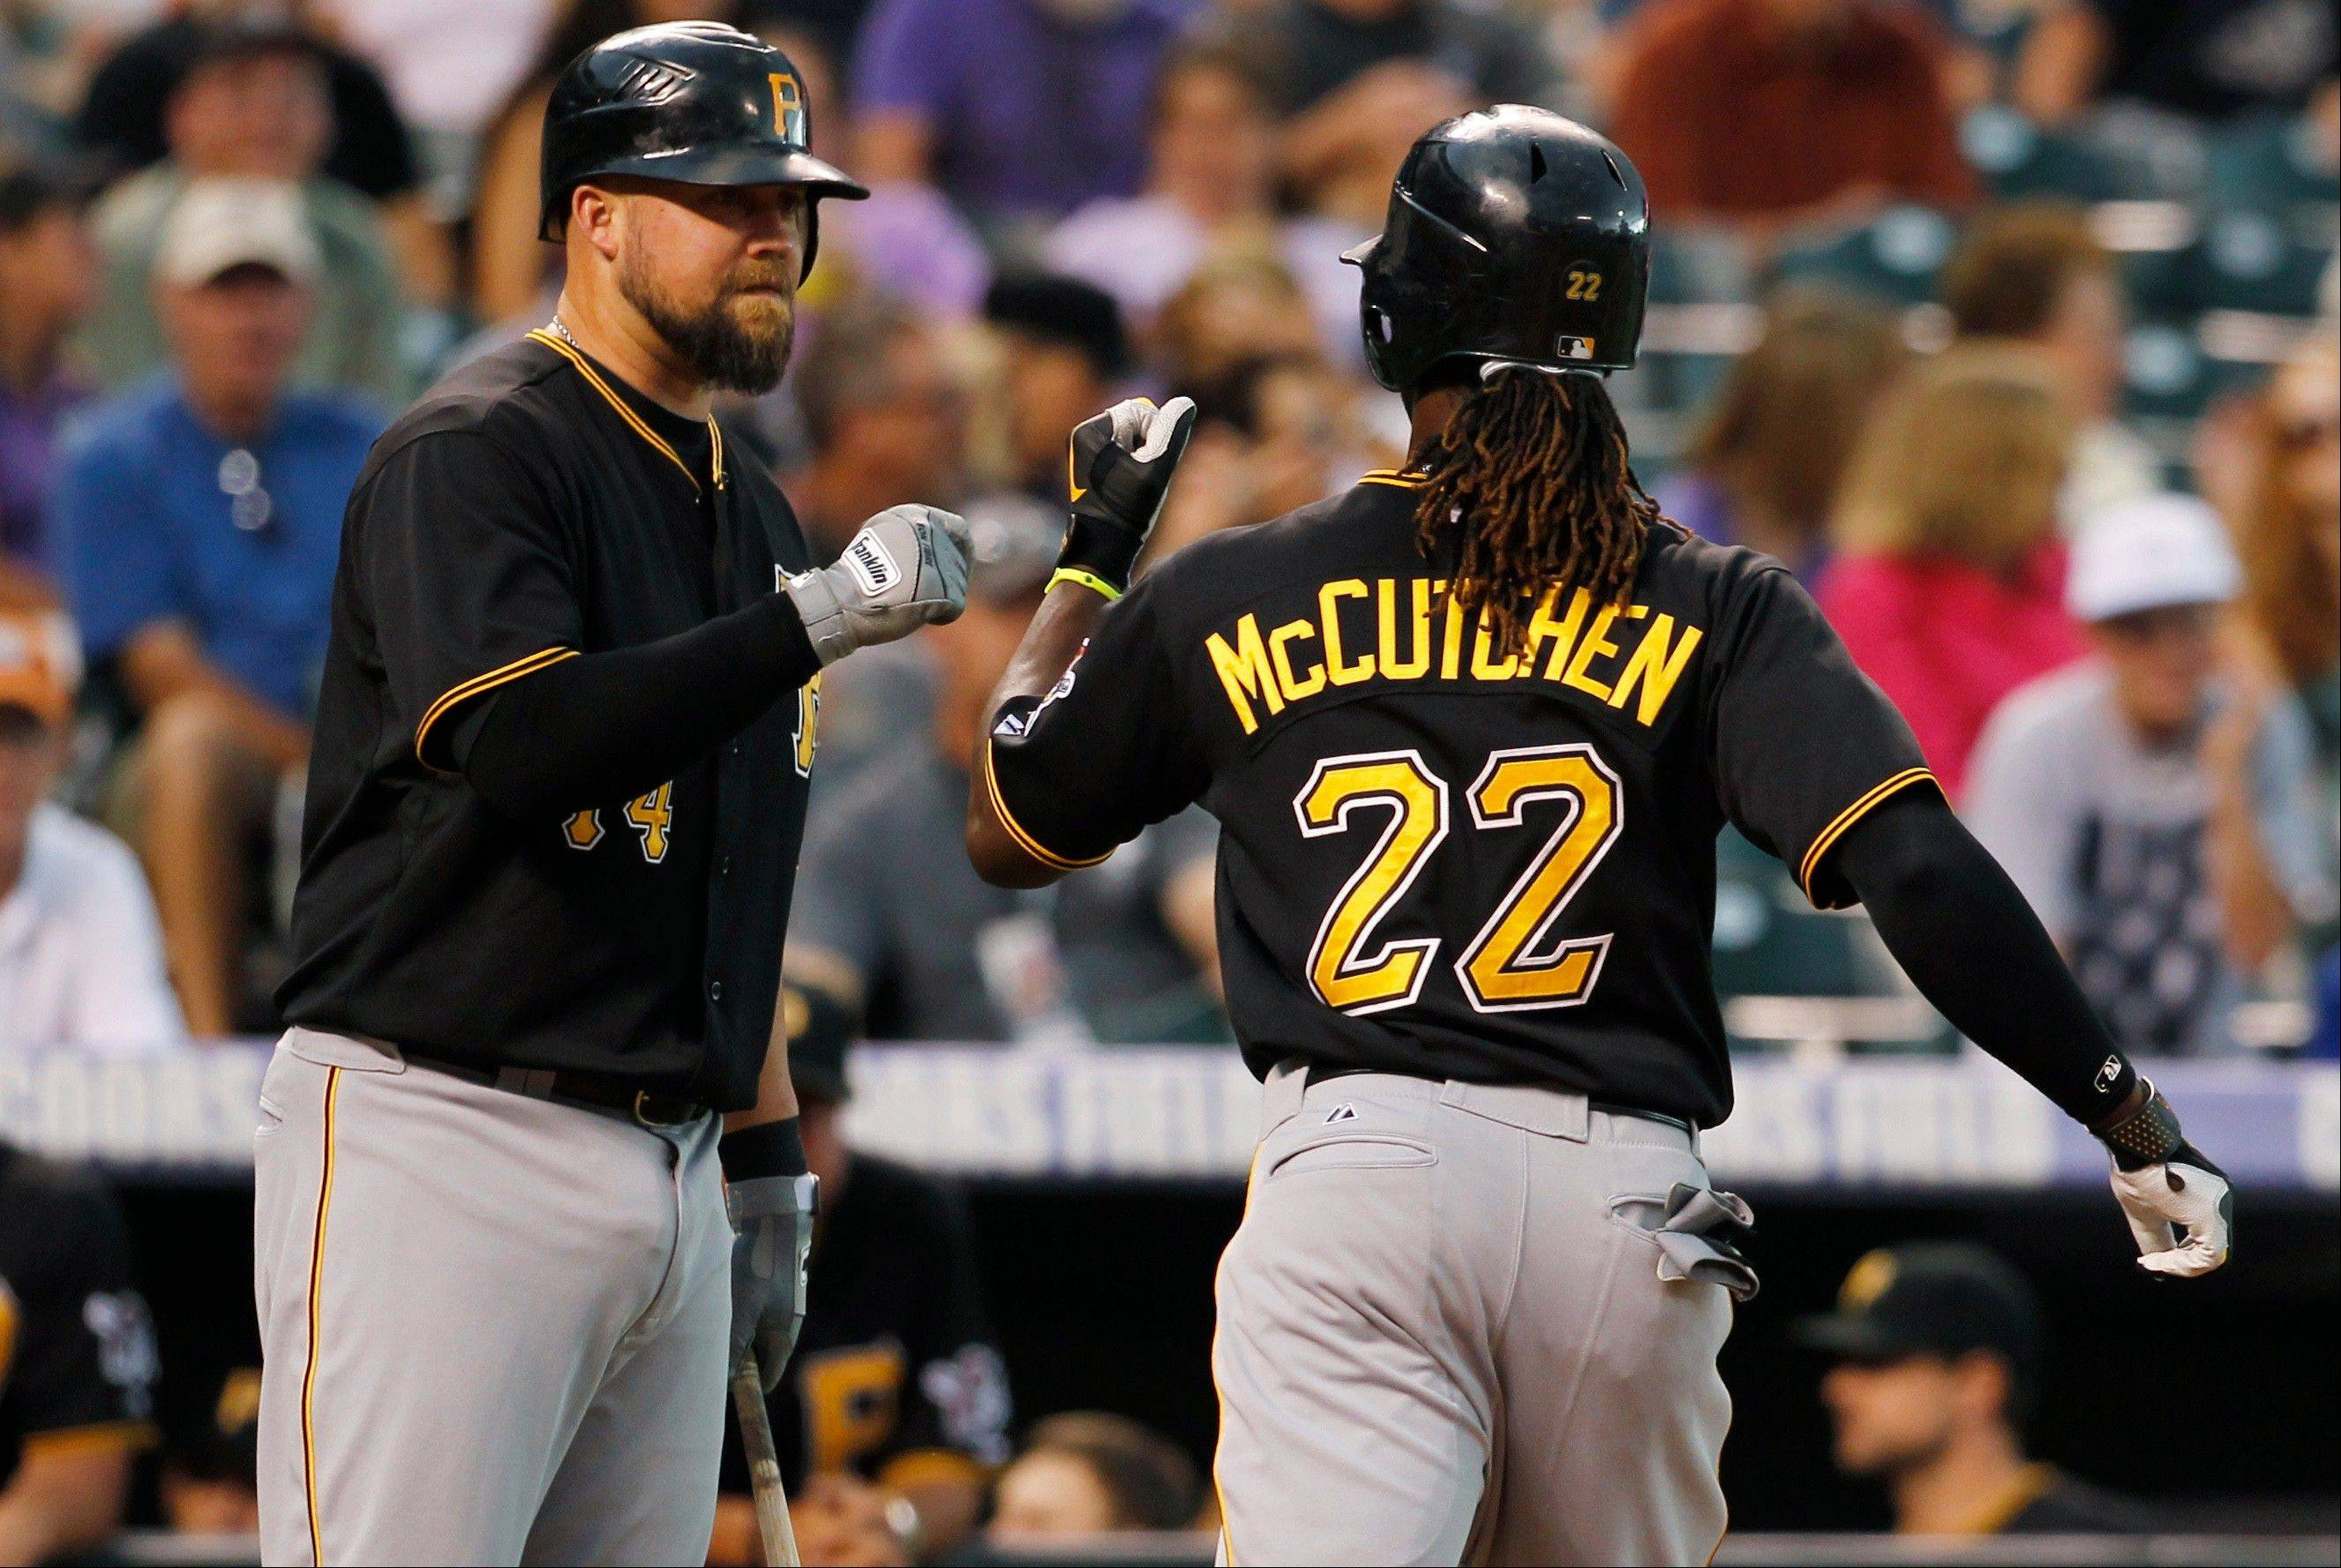 The Pittsburgh Pirates' Casey McGehee, left, congratulates Andrew McCutchen as he returns to the dugout Tuesday after hitting a solo home run against the Colorado Rockies during the fourth inning of the Pirates' 6-2 victory in Denver.